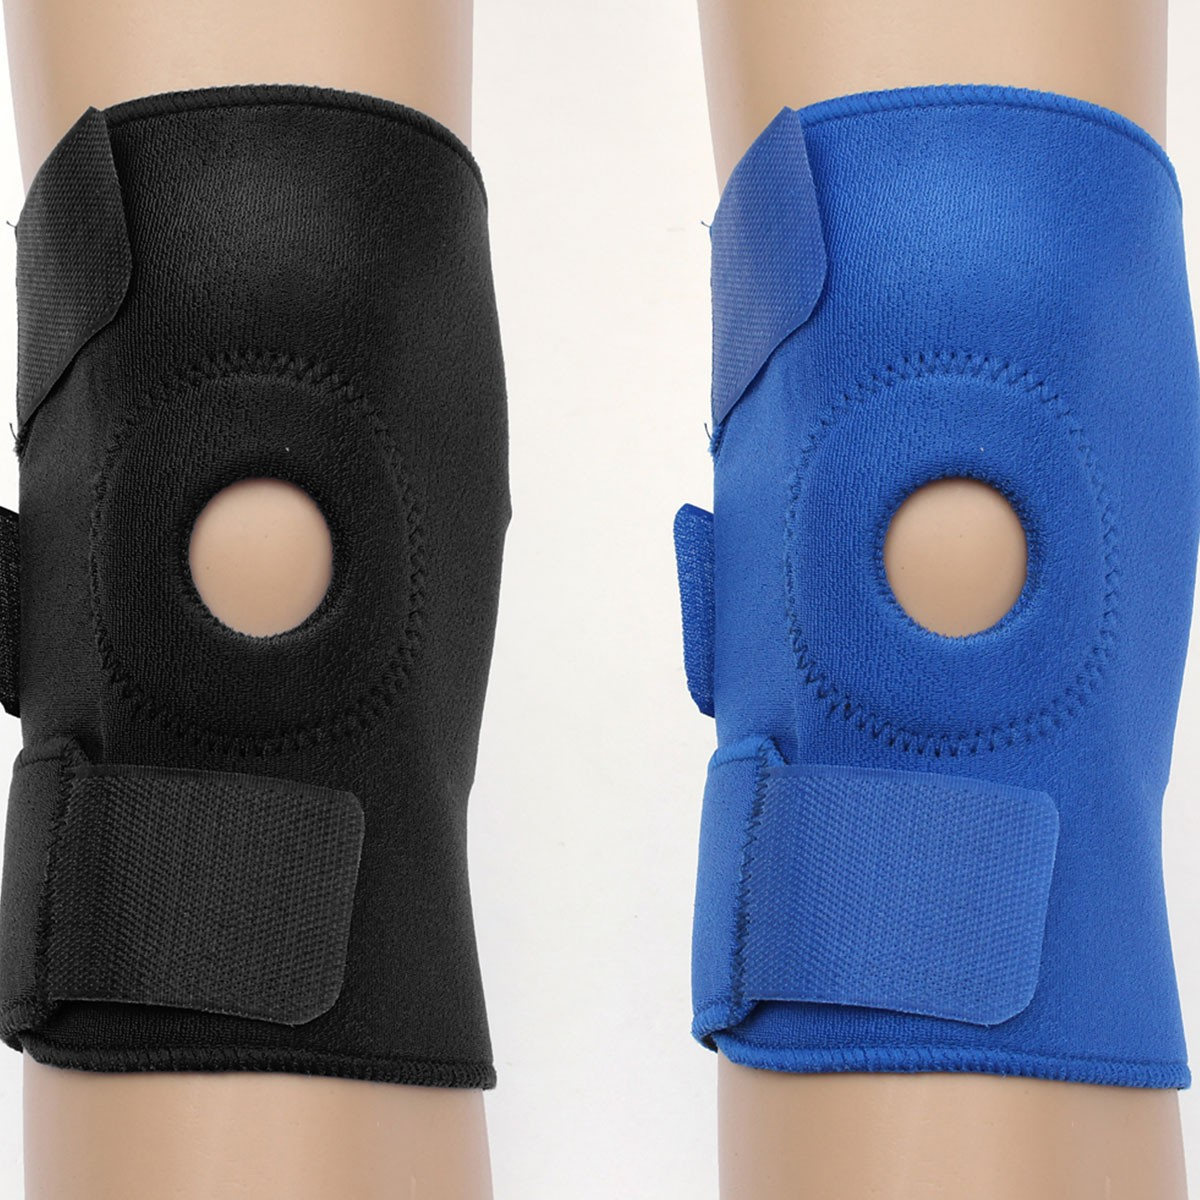 Neoprene Water-Resistant Knee Support Protector Brace Wrap Adjustable Compression for Swimming, Running, Surfing, Diving, Exercise, Athletic Sprains, Tendonitis ACL, Meniscus Tear